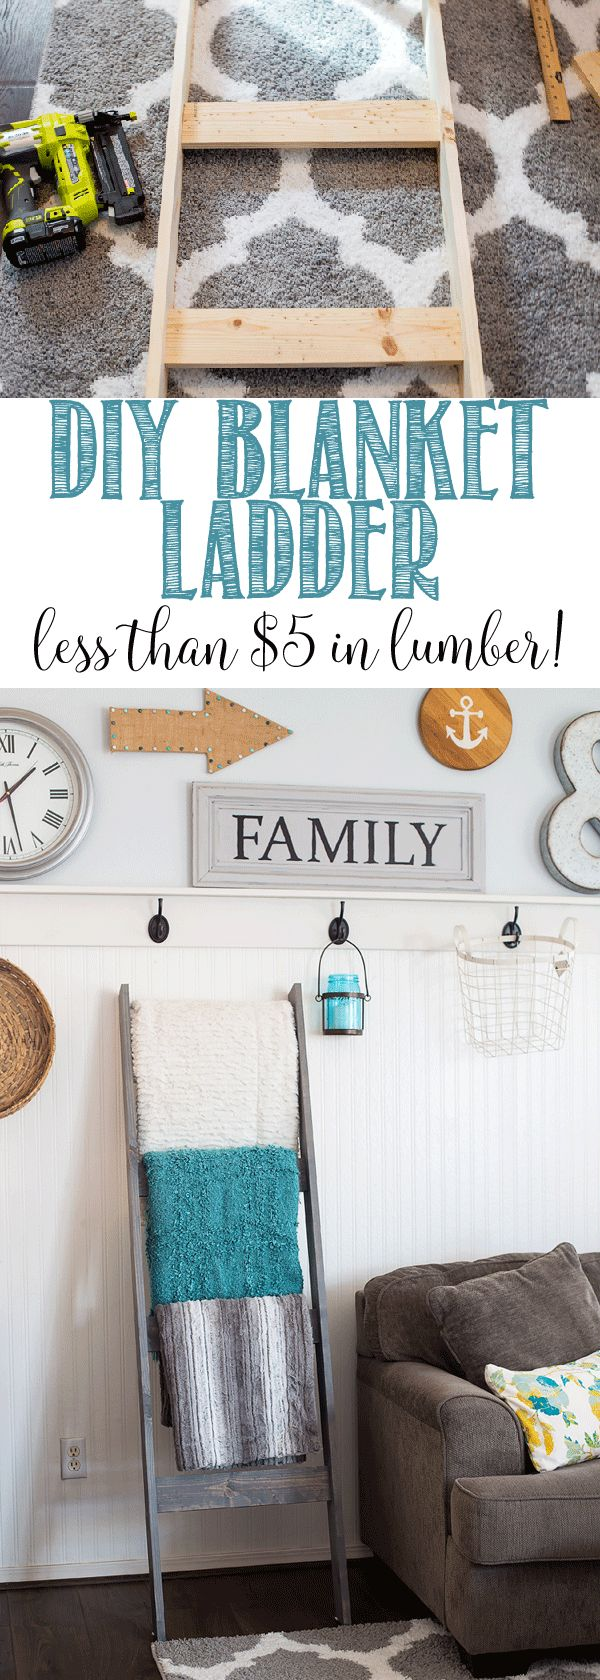 DIY Blanket Ladder For Less Than 5 In Lumber Great Step By